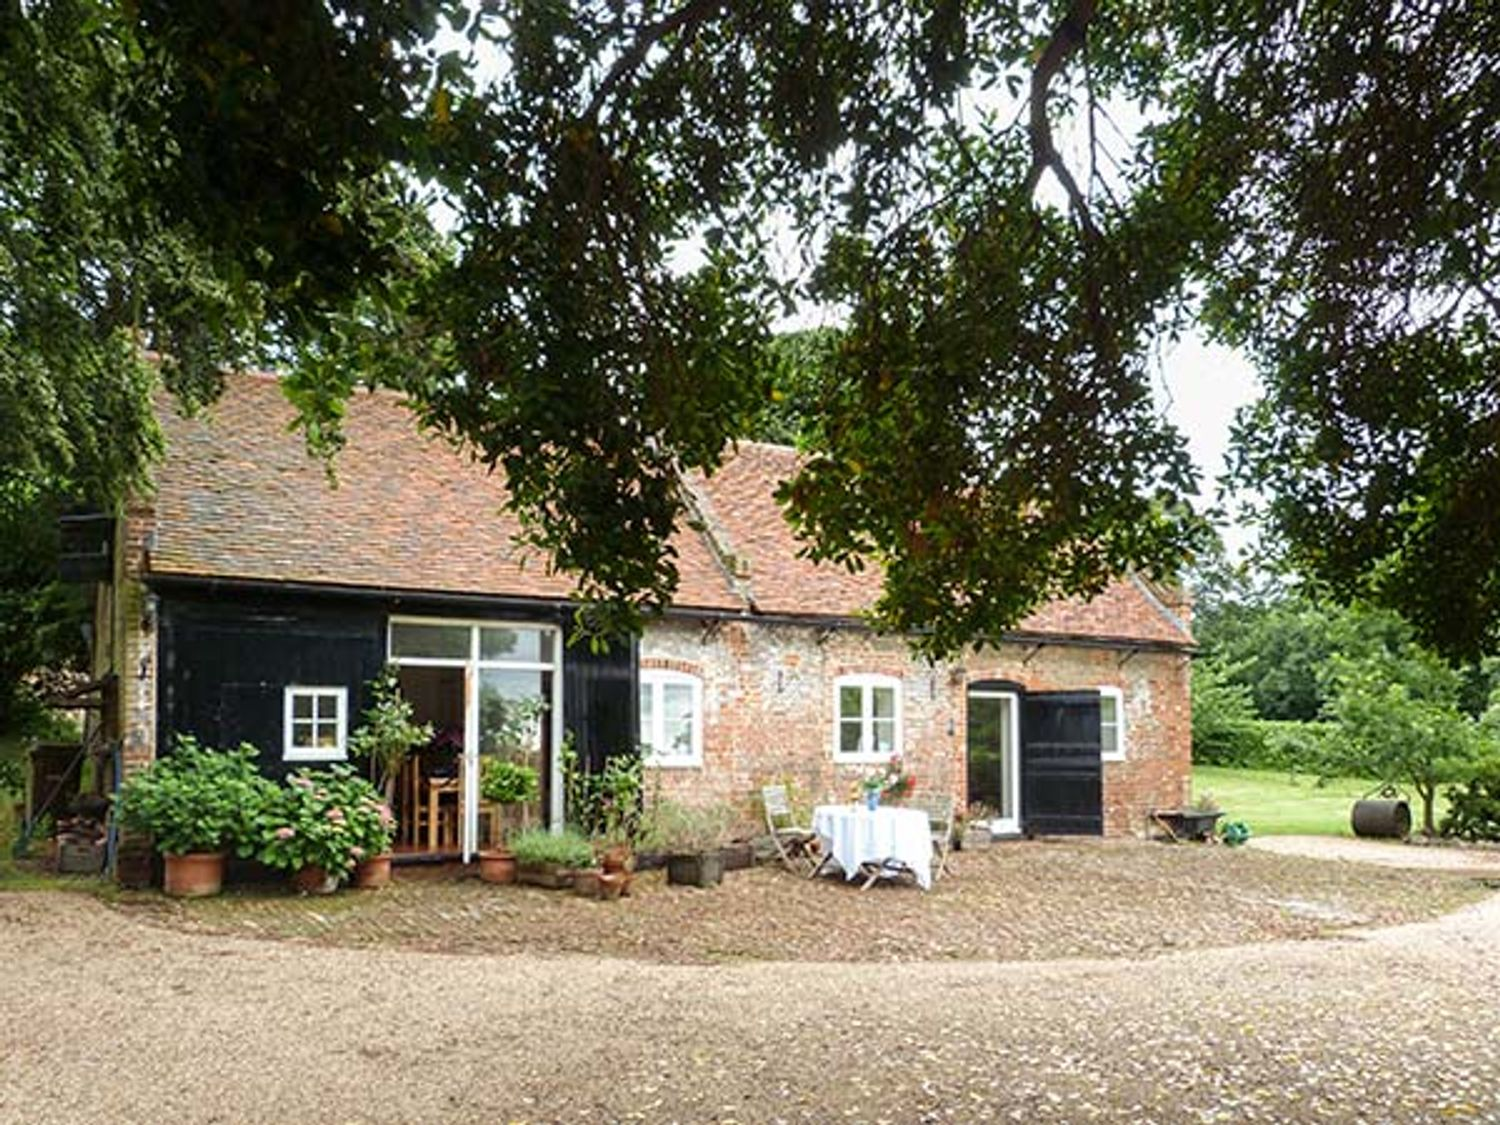 Holiday Cottages in Kent:The Stables, Upnor | Sykes Cottages